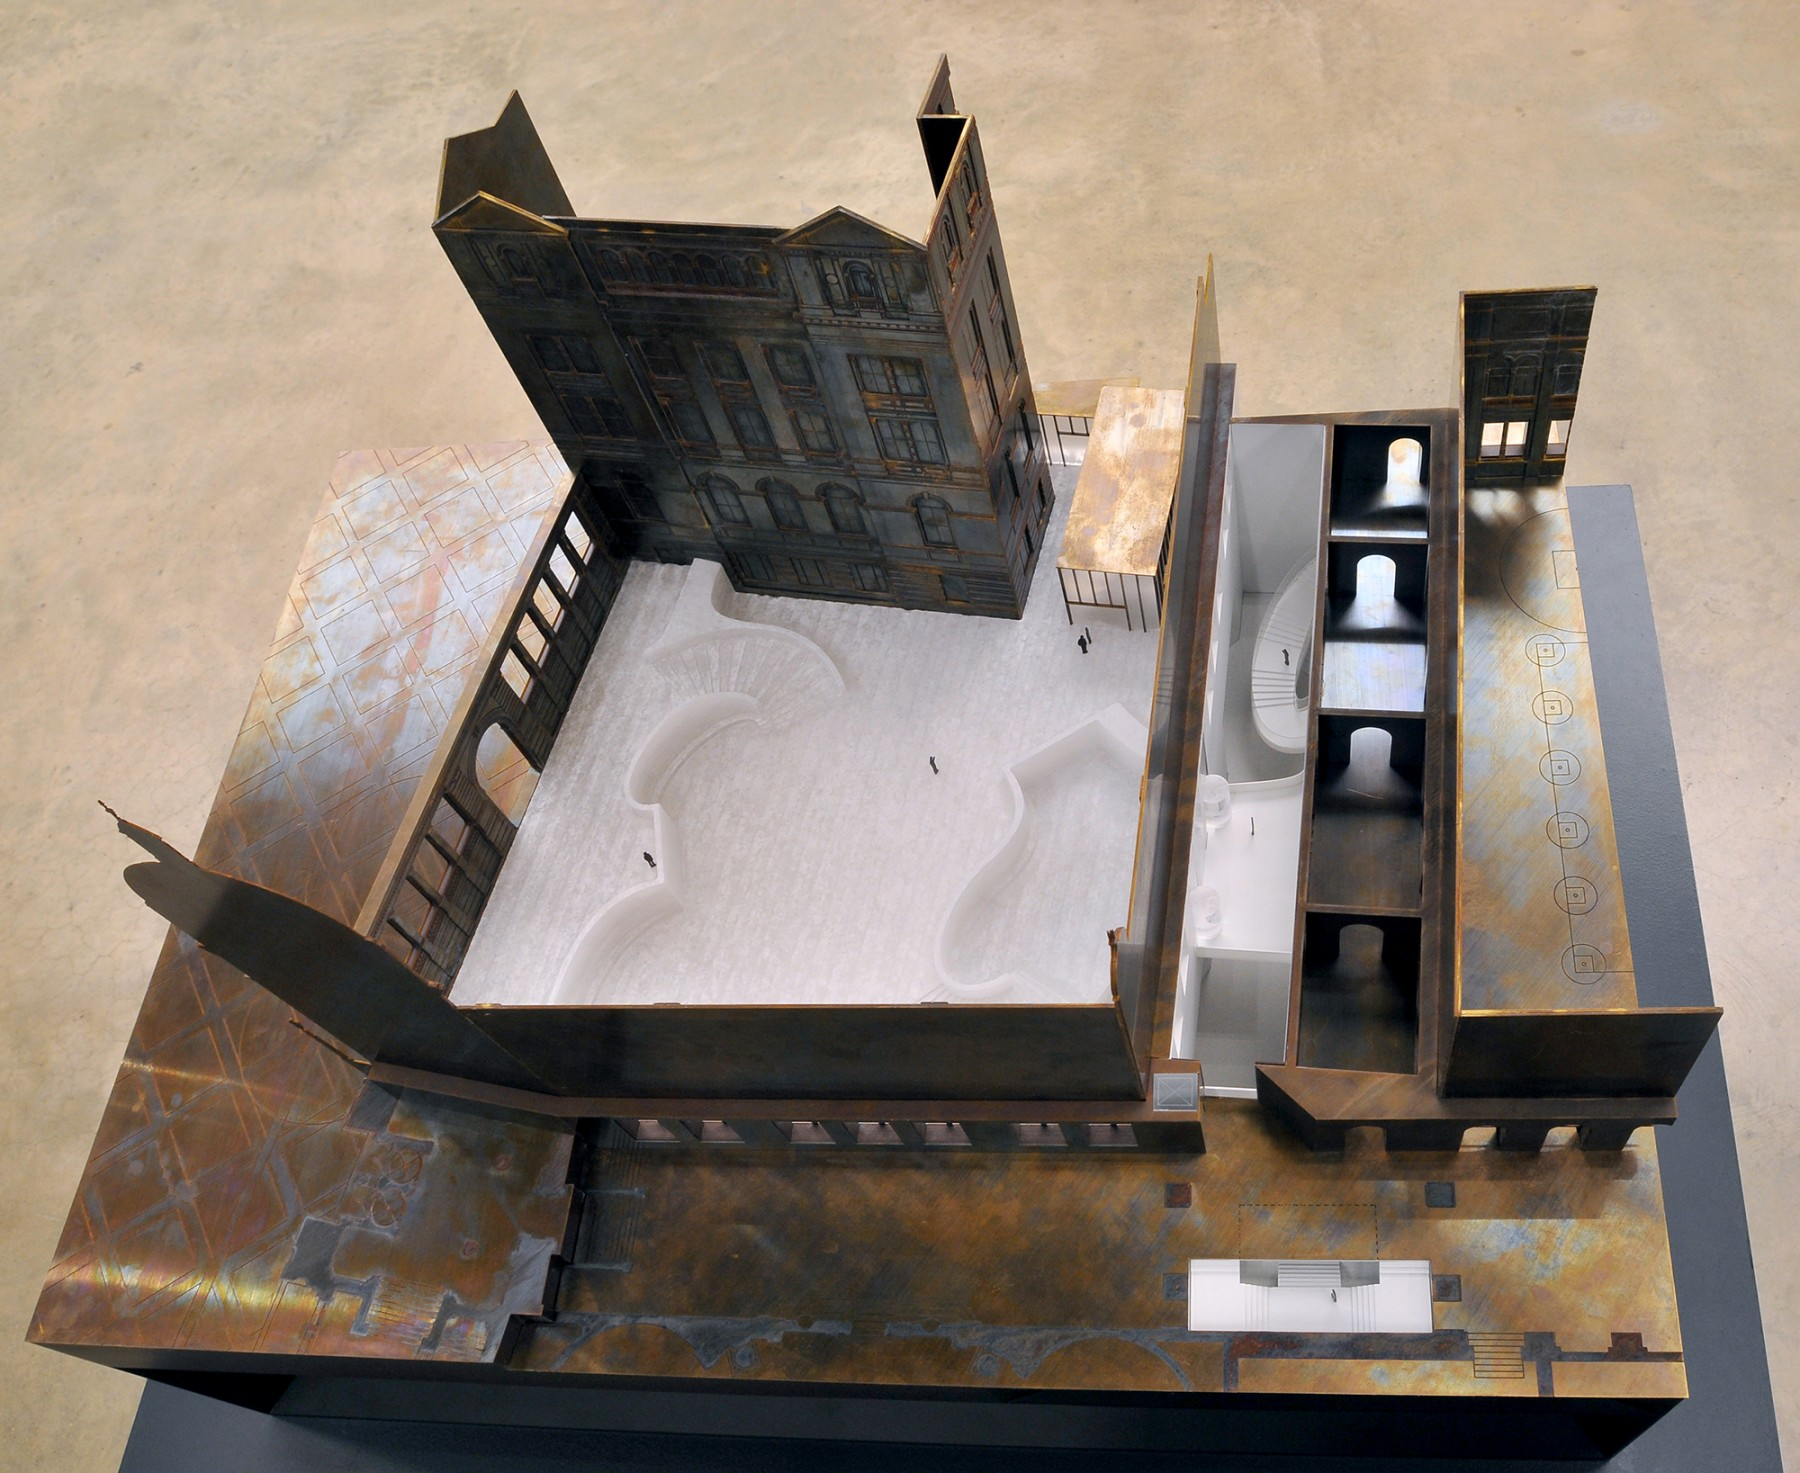 Victoria-and-Albert-Museum-V&A-competition-Exhibition-Road-gallery-London-Sir-Aston-Webb-design-short-list-Jamie-Fobert-architects-model-2